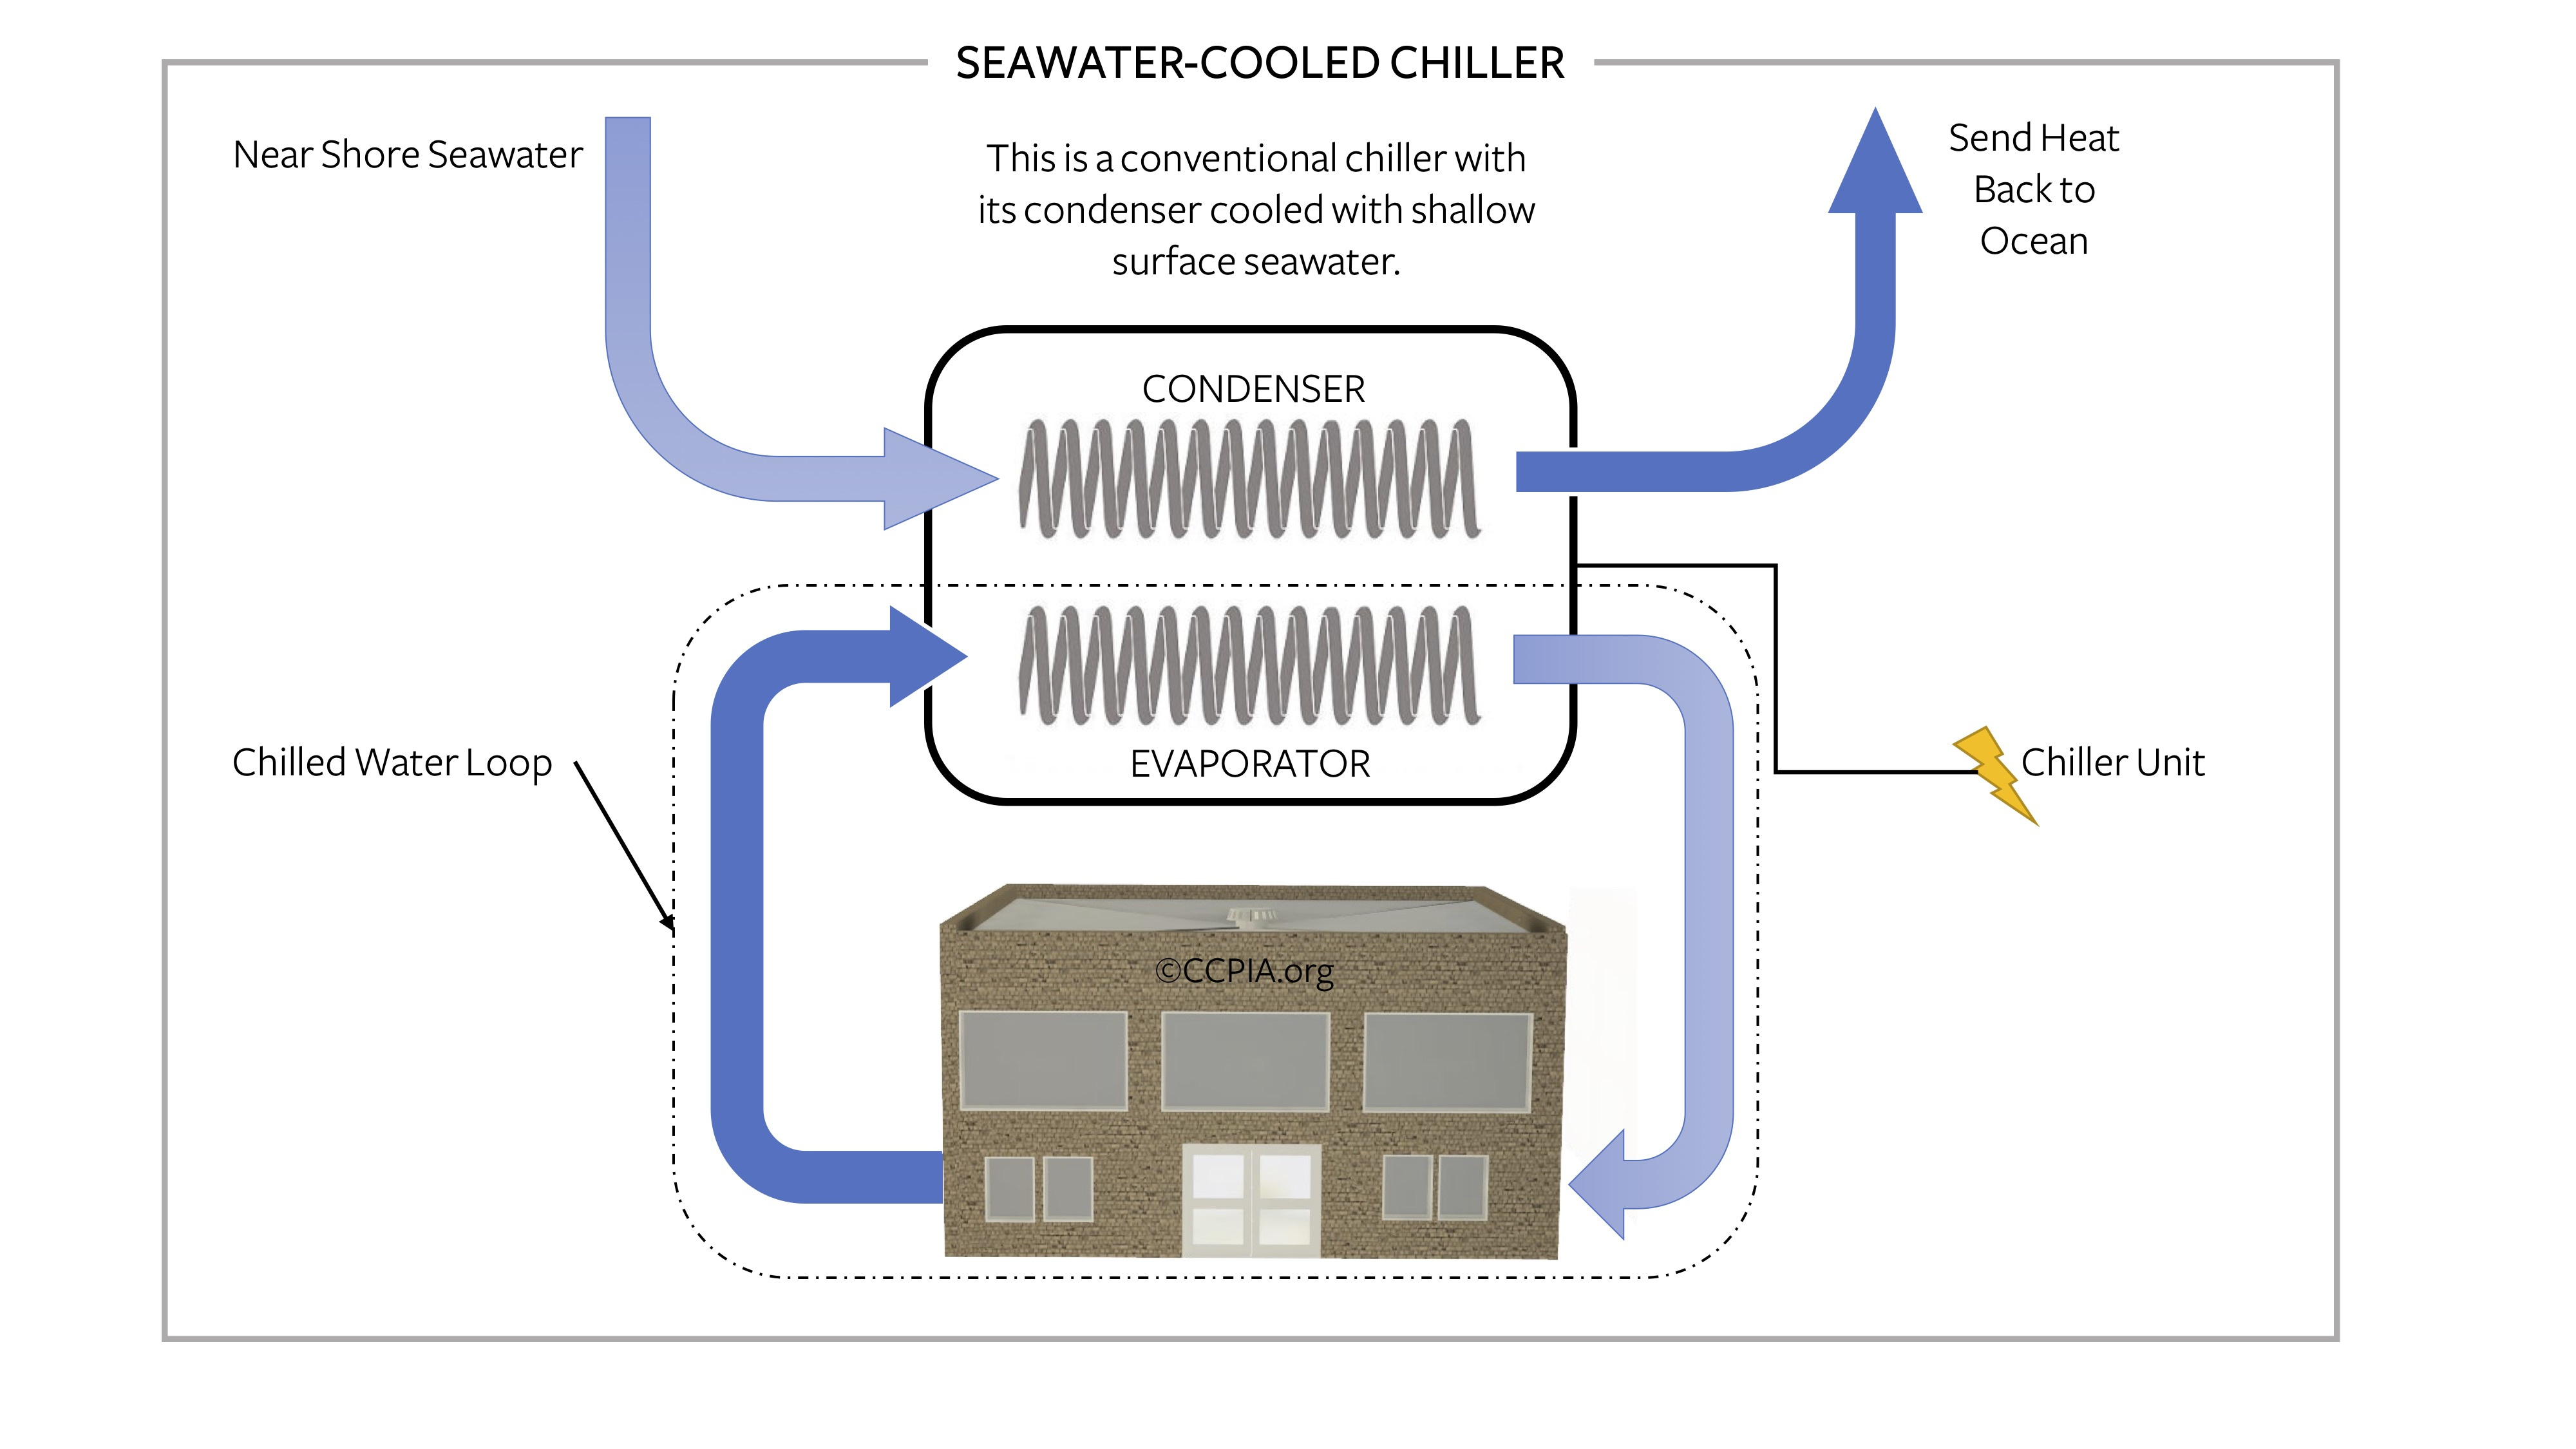 Commercial building seawater-cooled chiller.